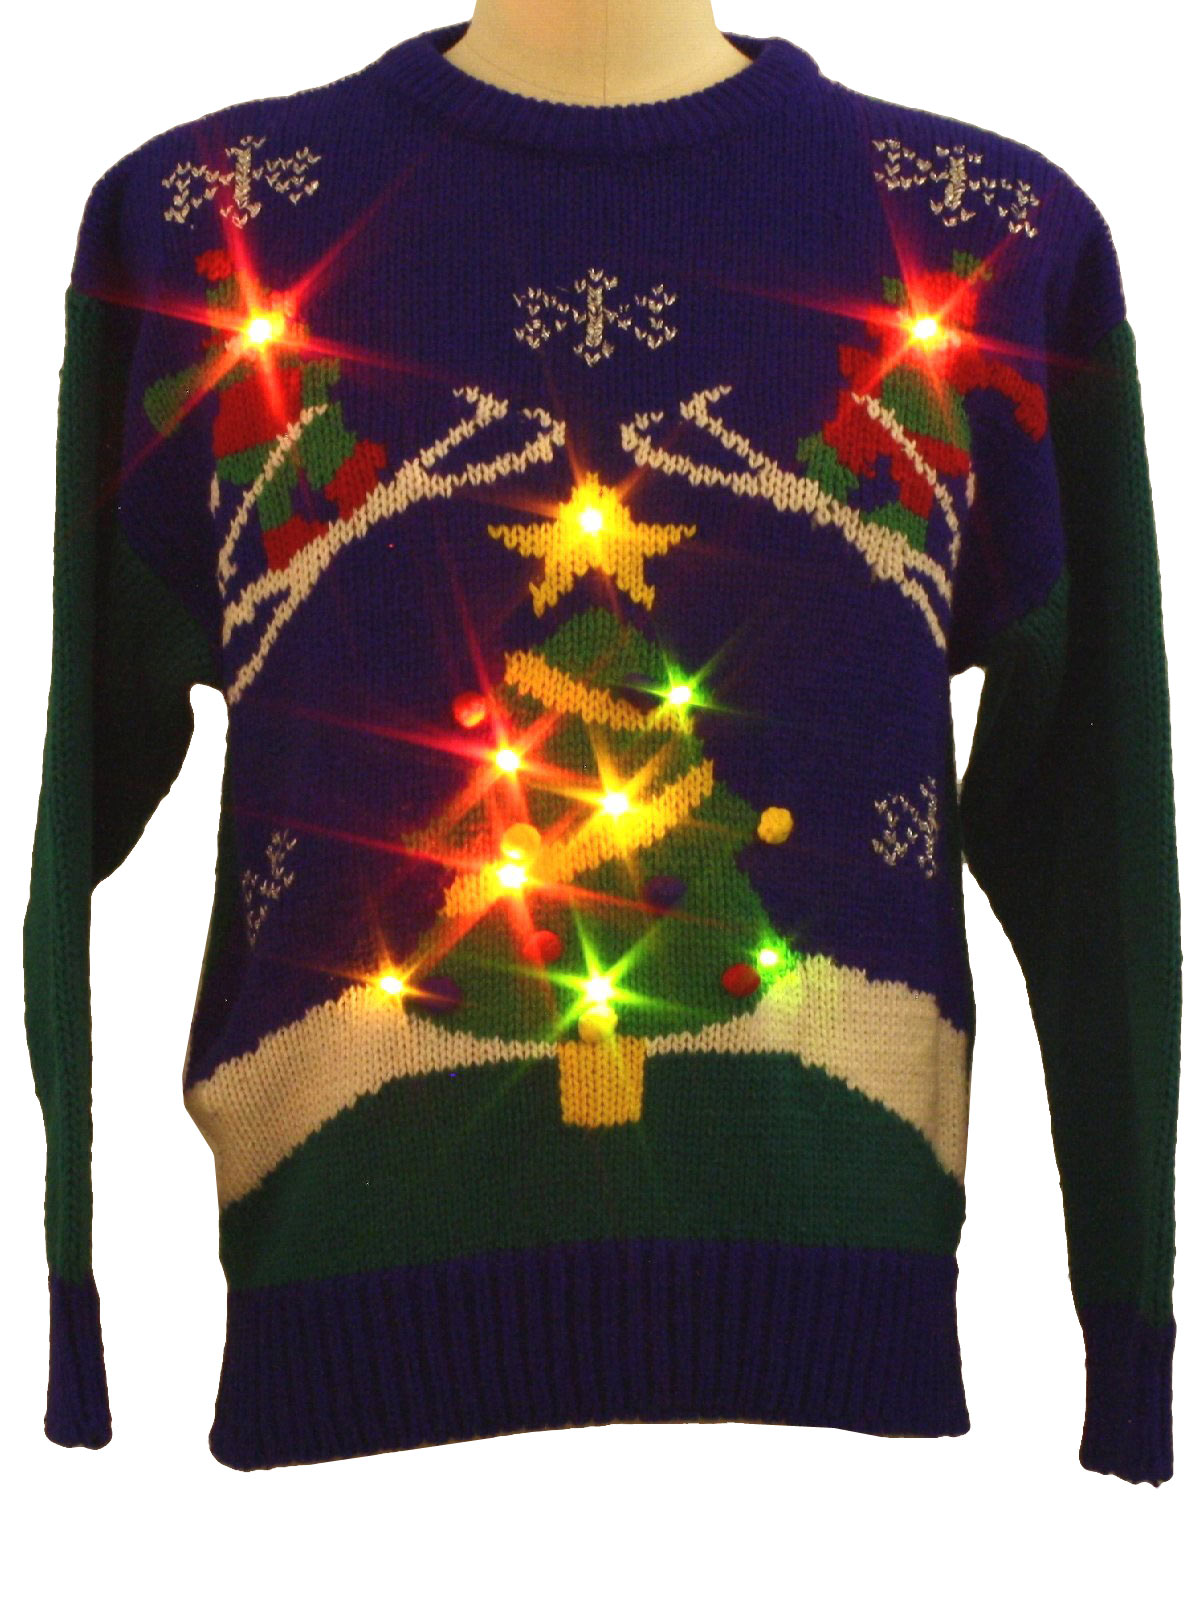 1980s Totally 80s Lightup Ugly Christmas Sweater Totally